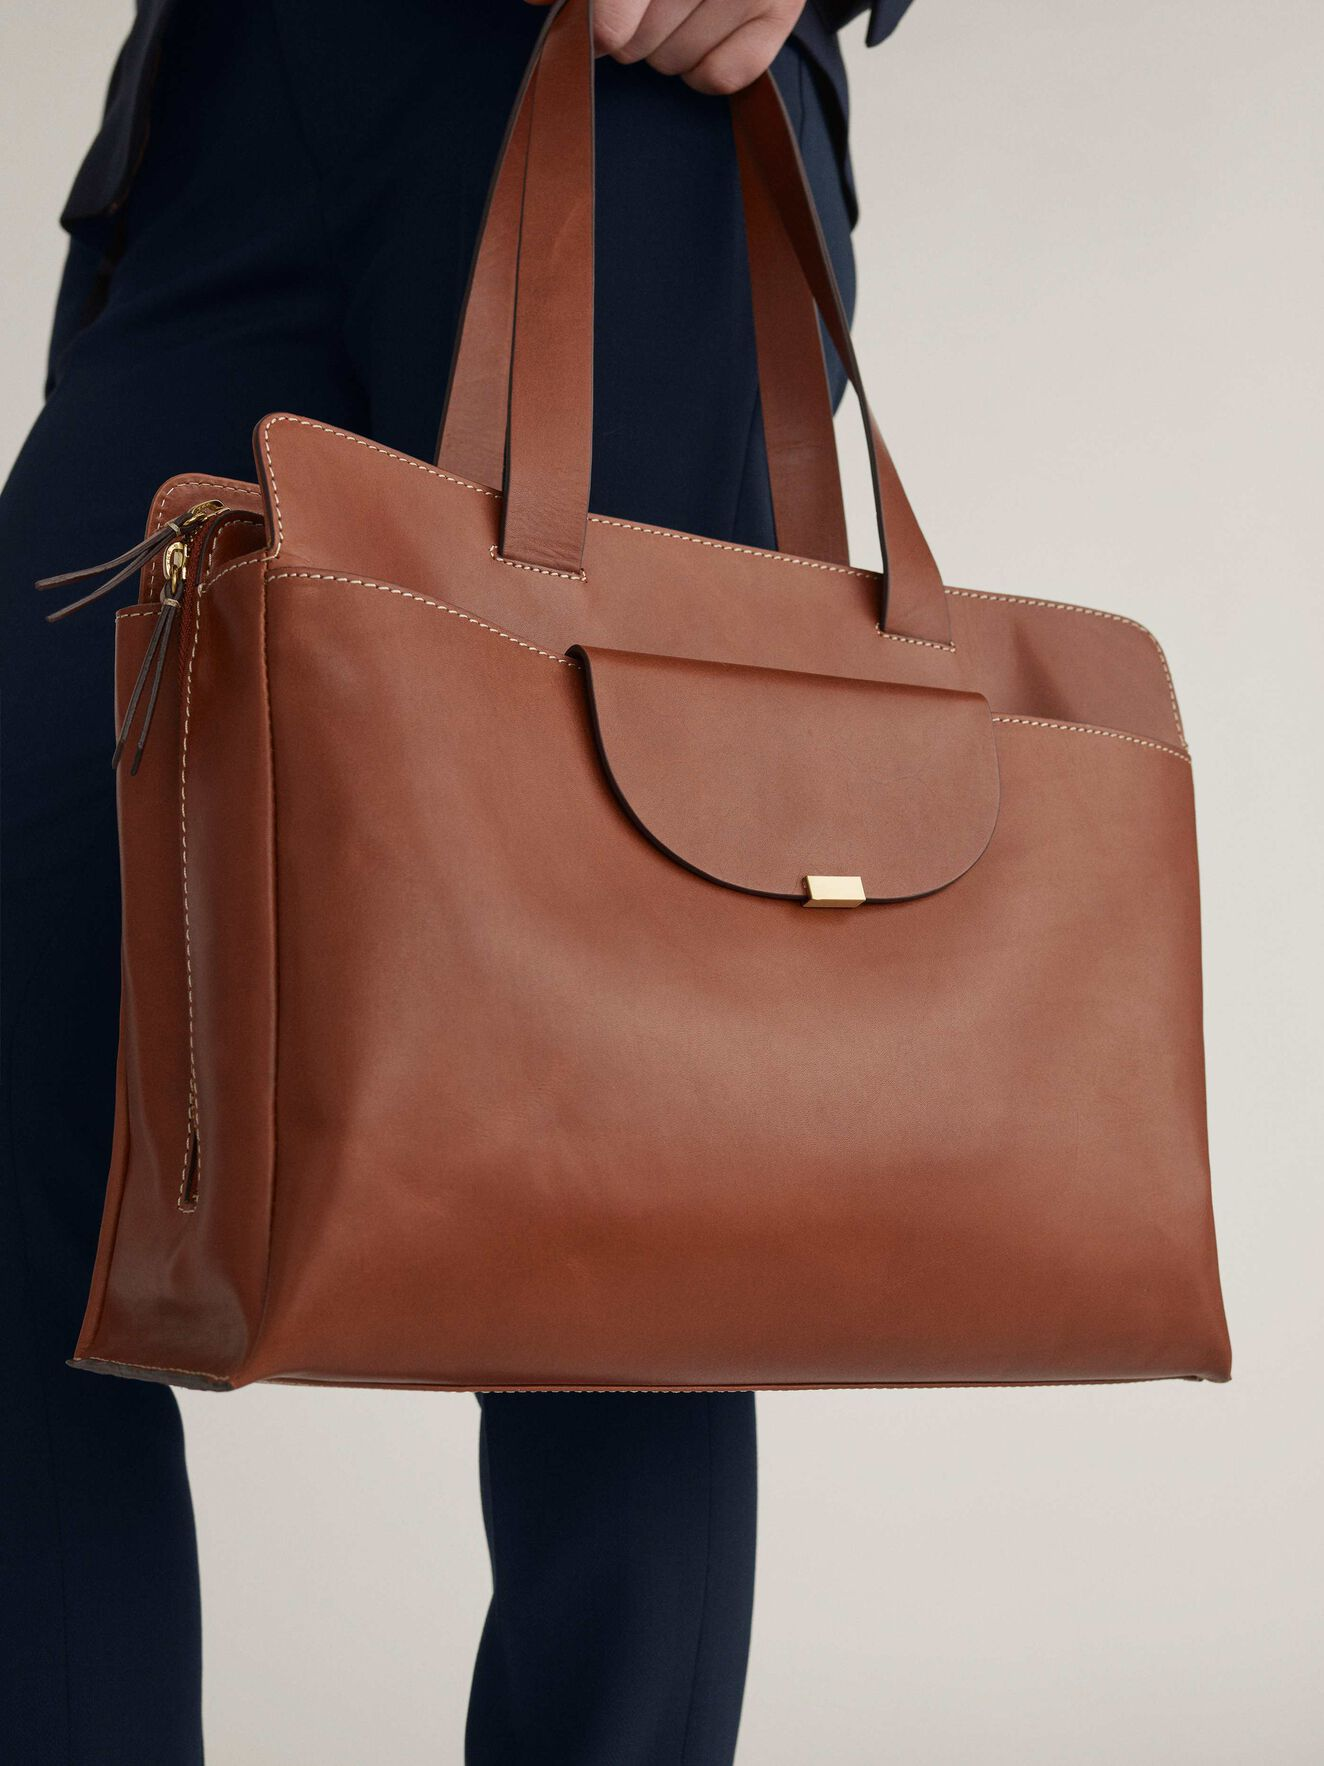 Edita Work Bag in Light Brown from Tiger of Sweden